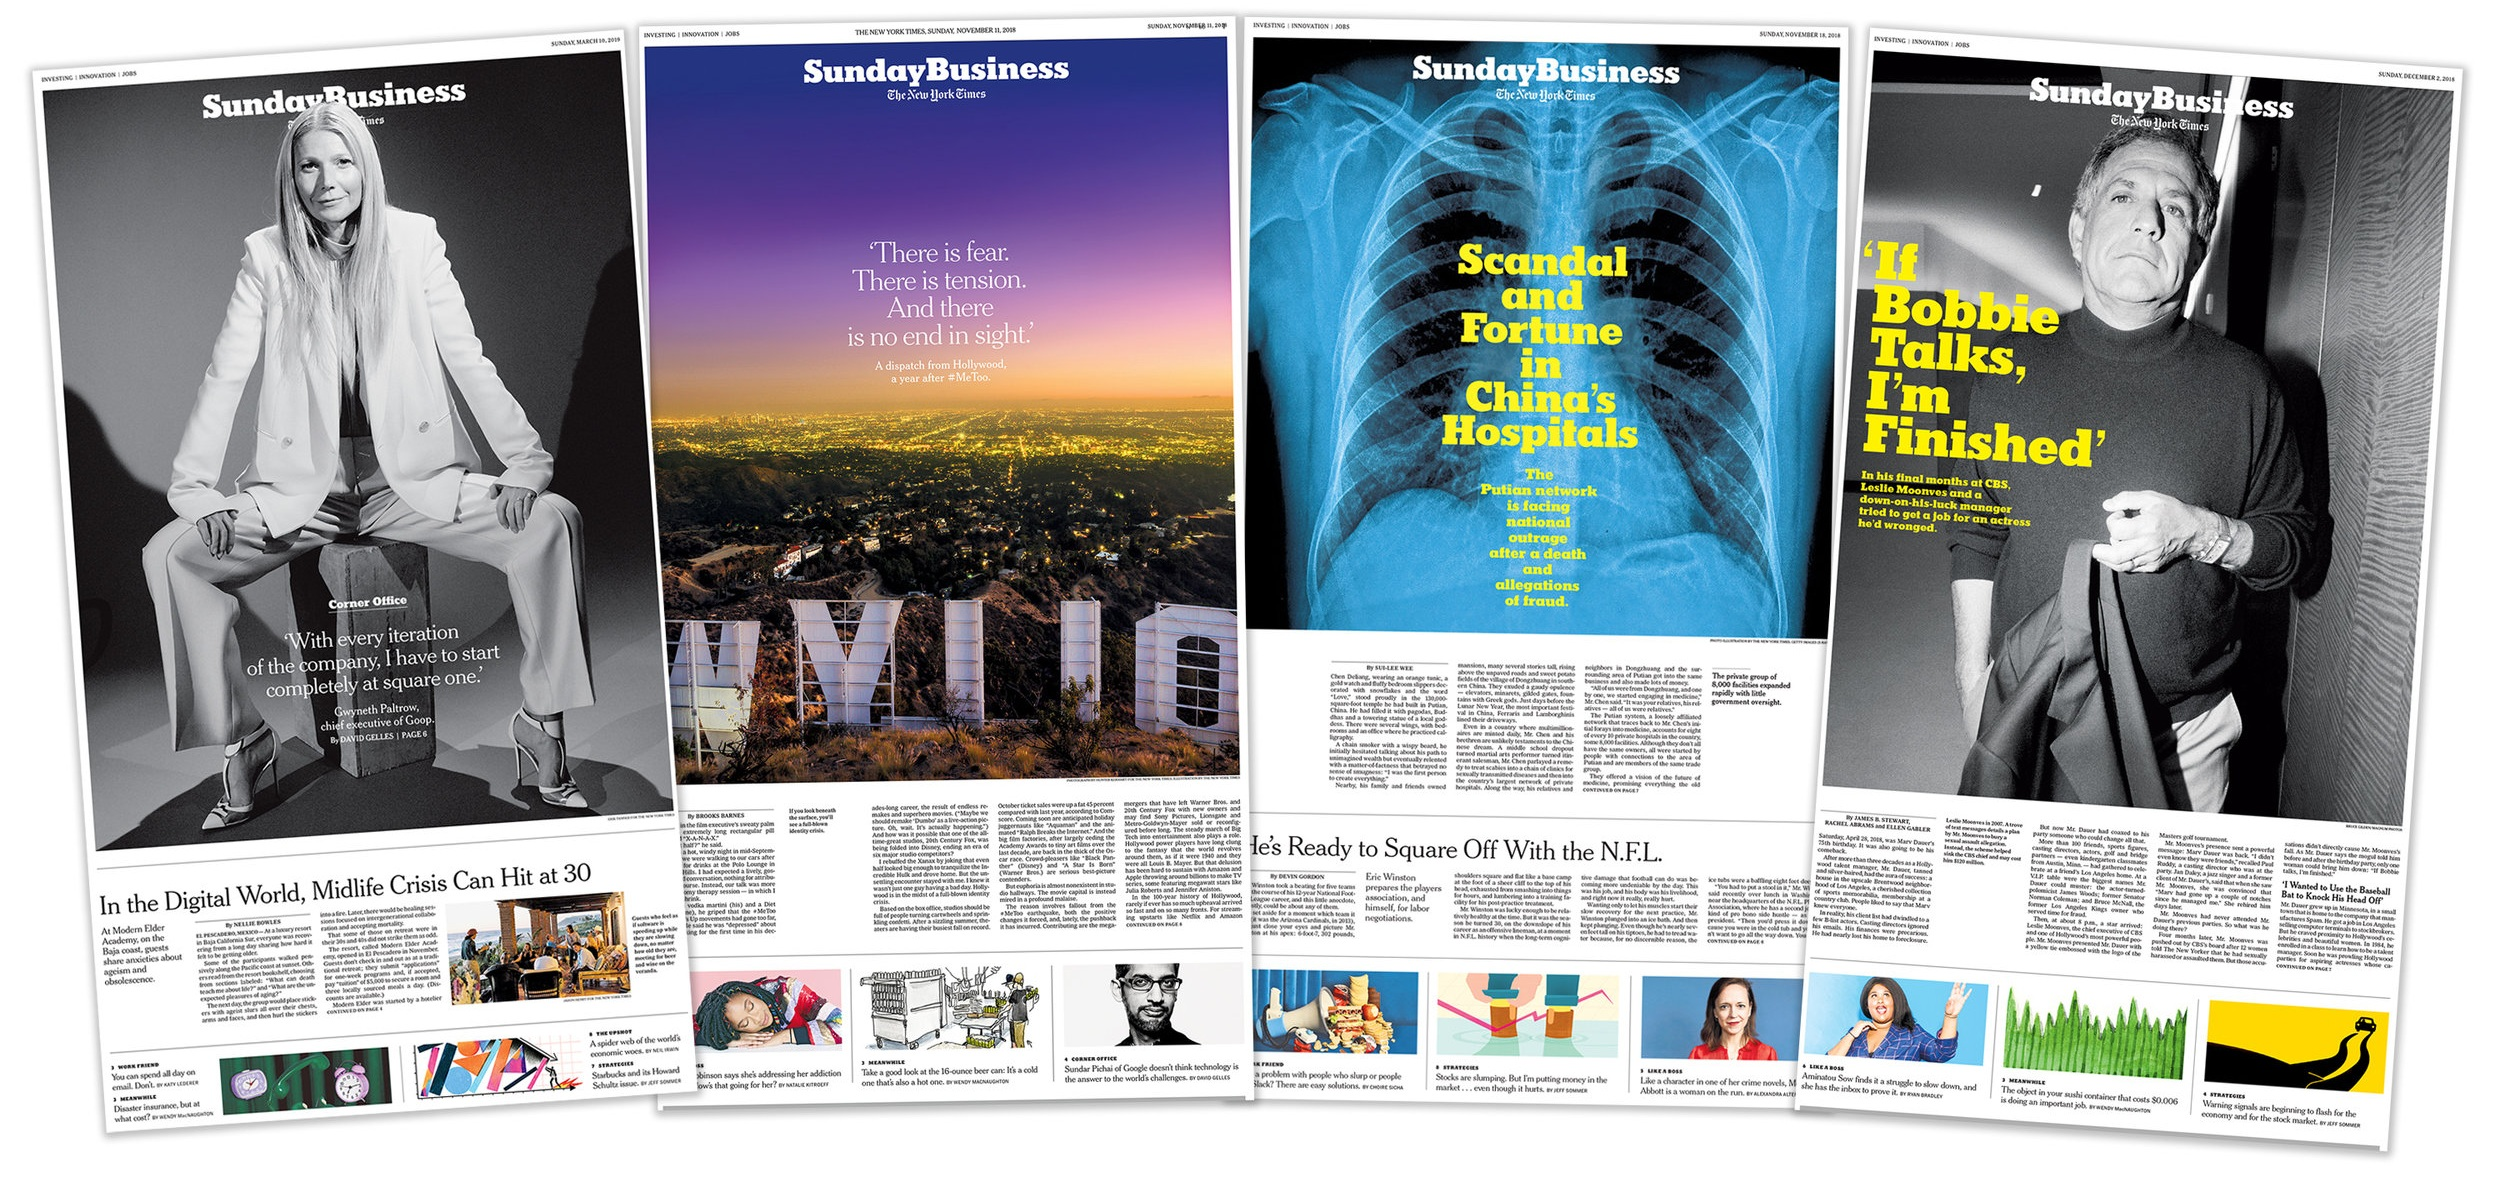 The redesigned Sunday Business section of The New York Times.  Role: Producer, Assigning photo editor (1,2); research/photo editor (3,4)  Photographers: Erik Tanner, Hunter Kerhart, Bruce Gilden/Magnum Photos (right).